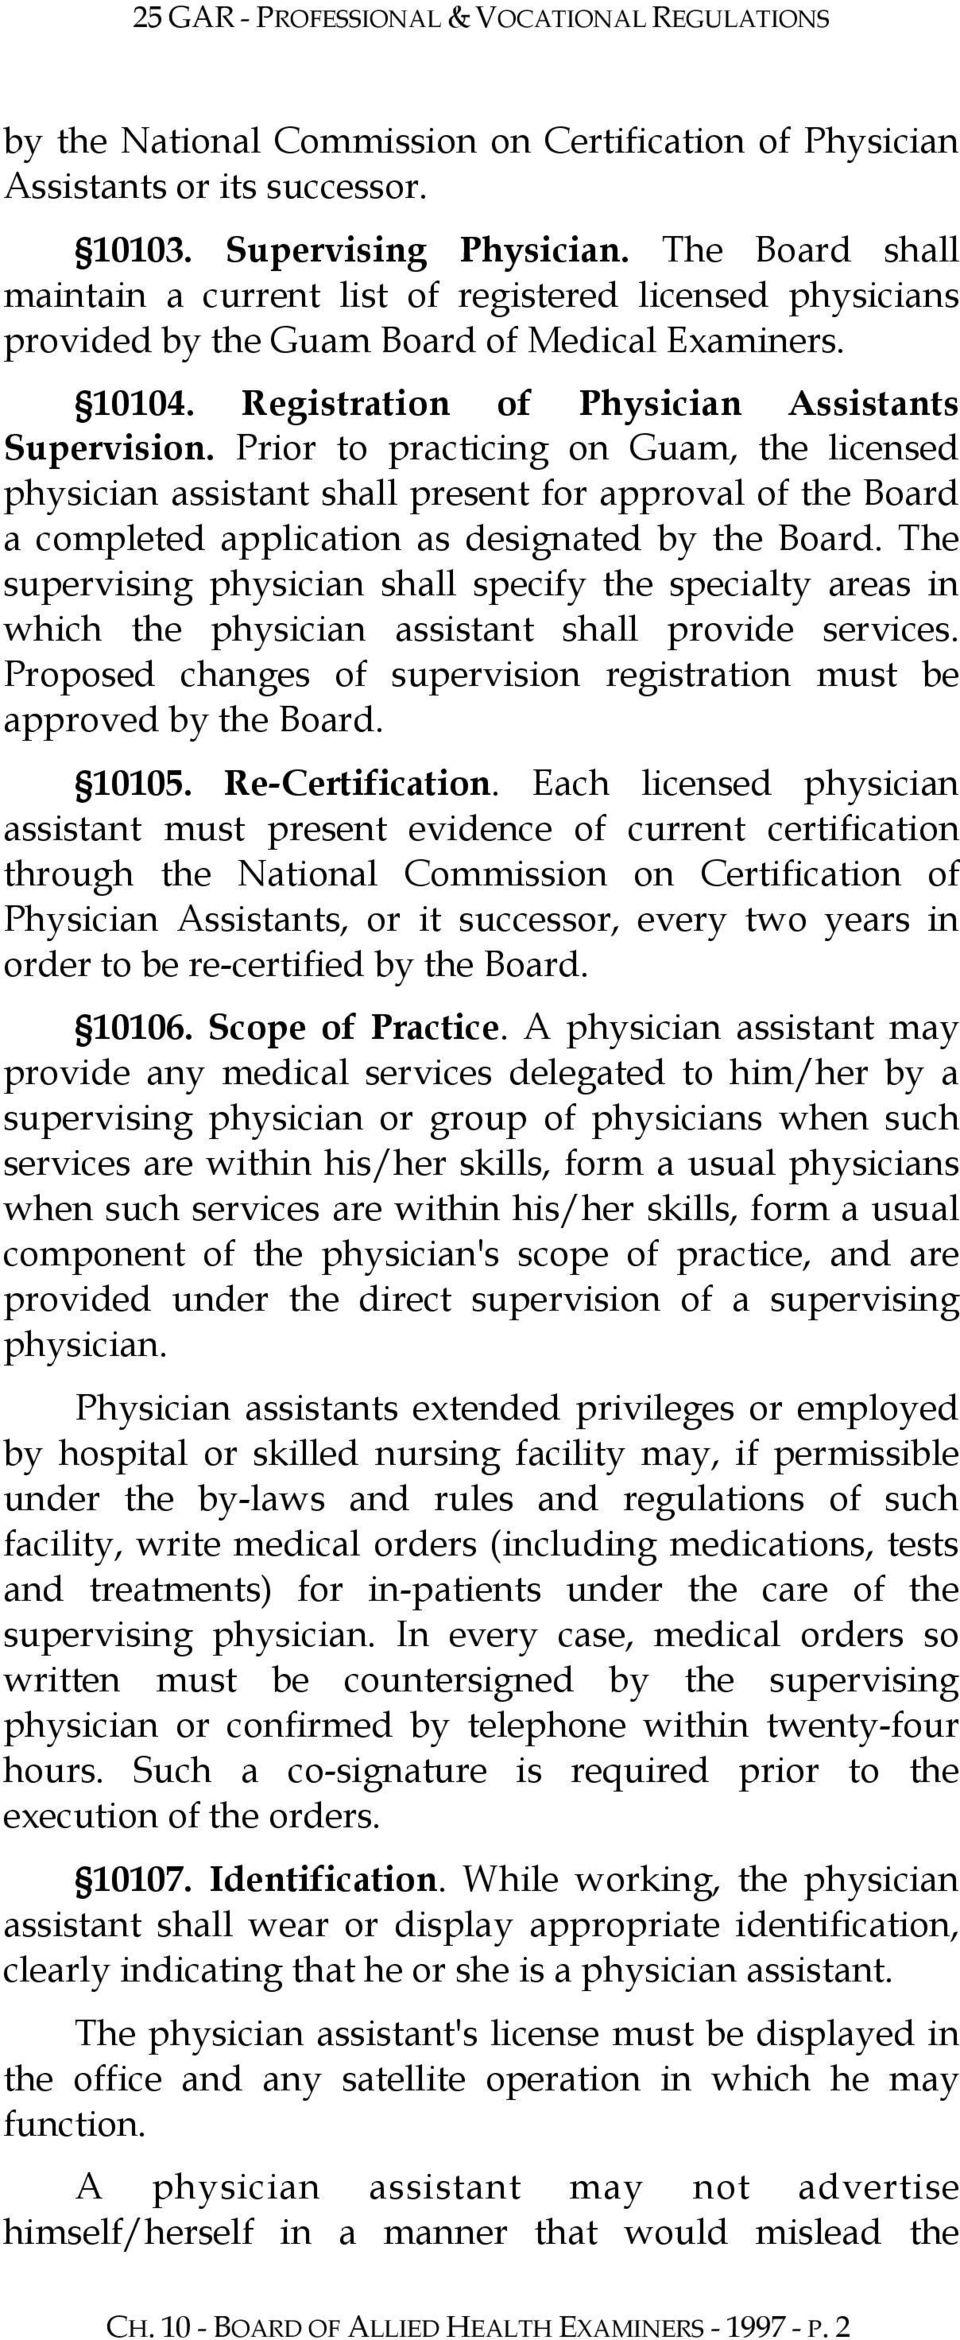 Prior to practicing on Guam, the licensed physician assistant shall present for approval of the Board a completed application as designated by the Board.